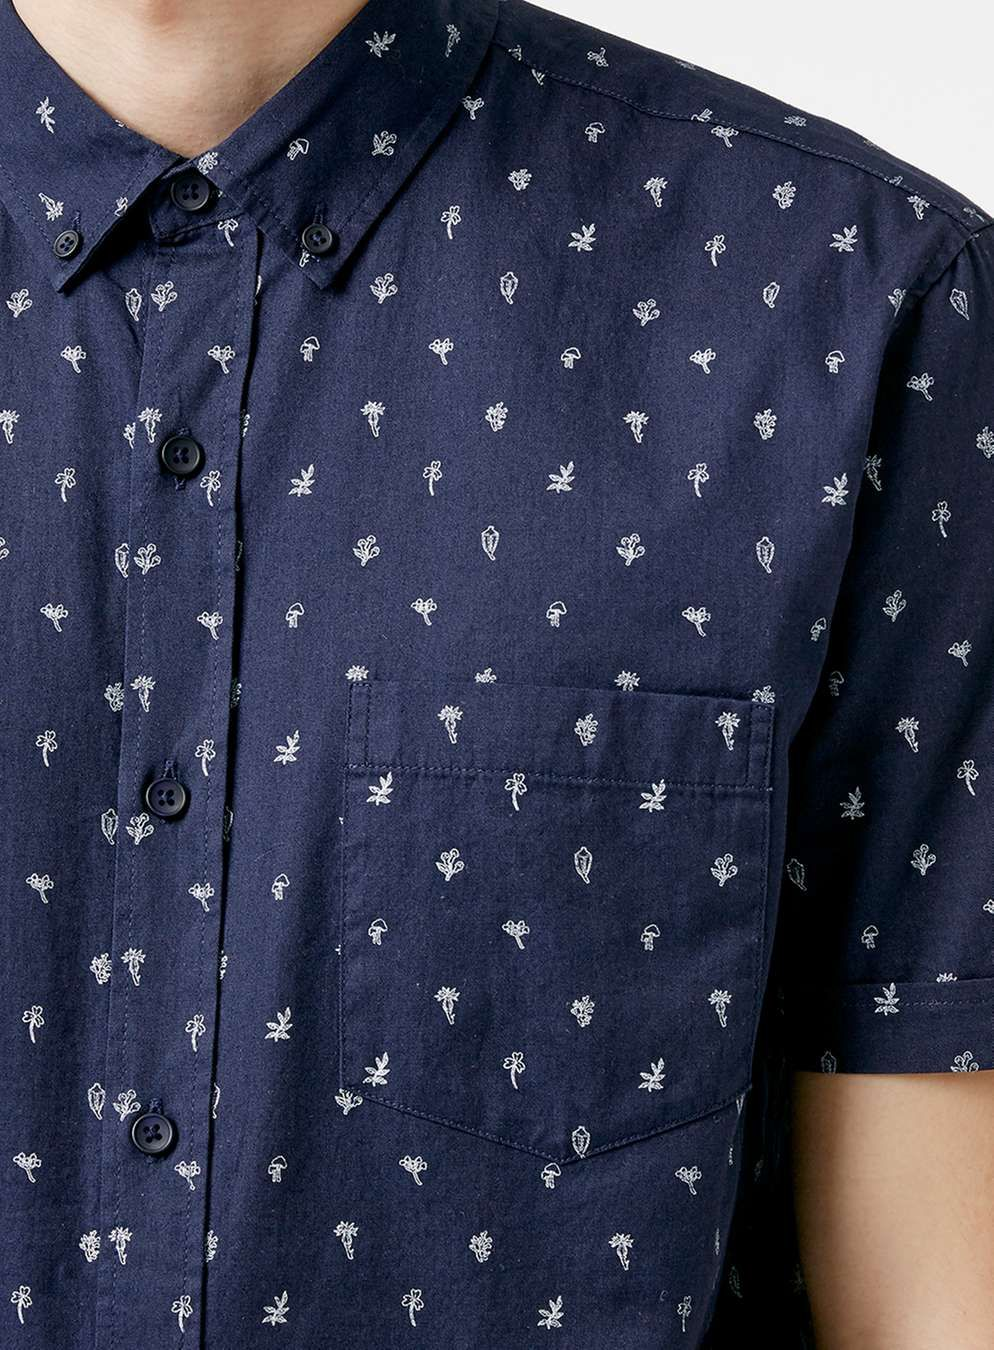 6755ea71 Indigo Seed Print Short Sleeve Casual Shirt - Men's Shirts - Clothing -  TOPMAN